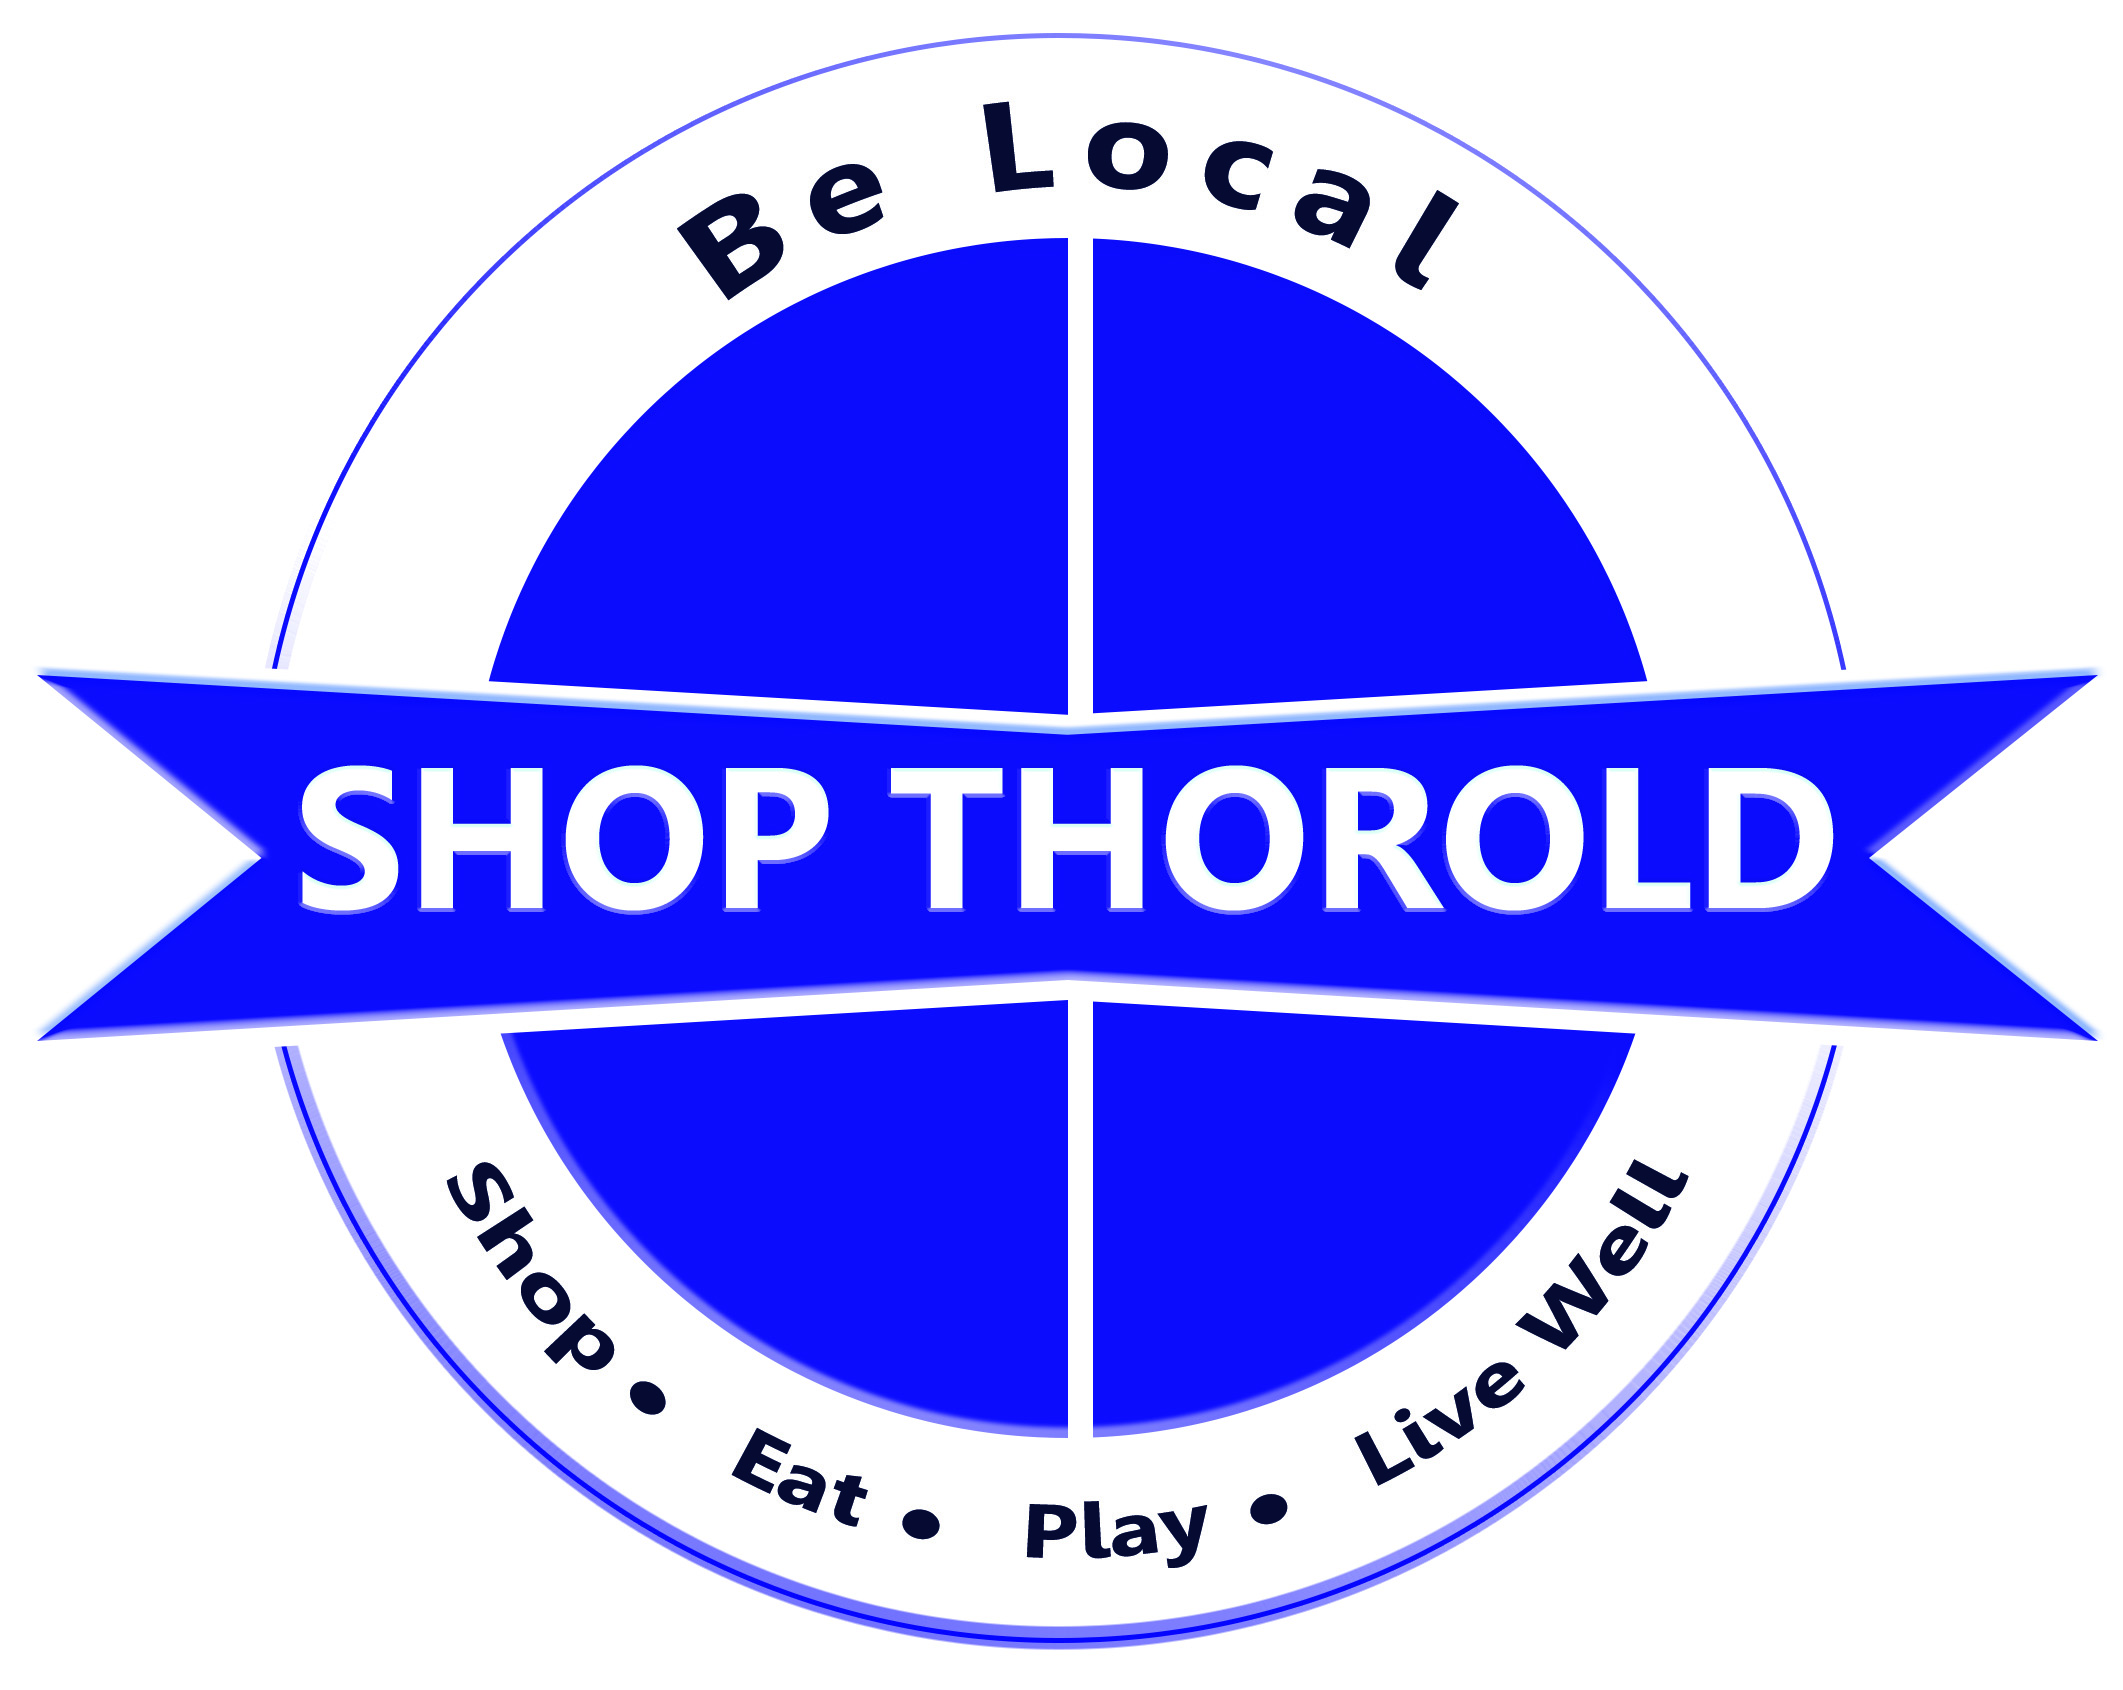 Shop Thorold - eat - play - live well